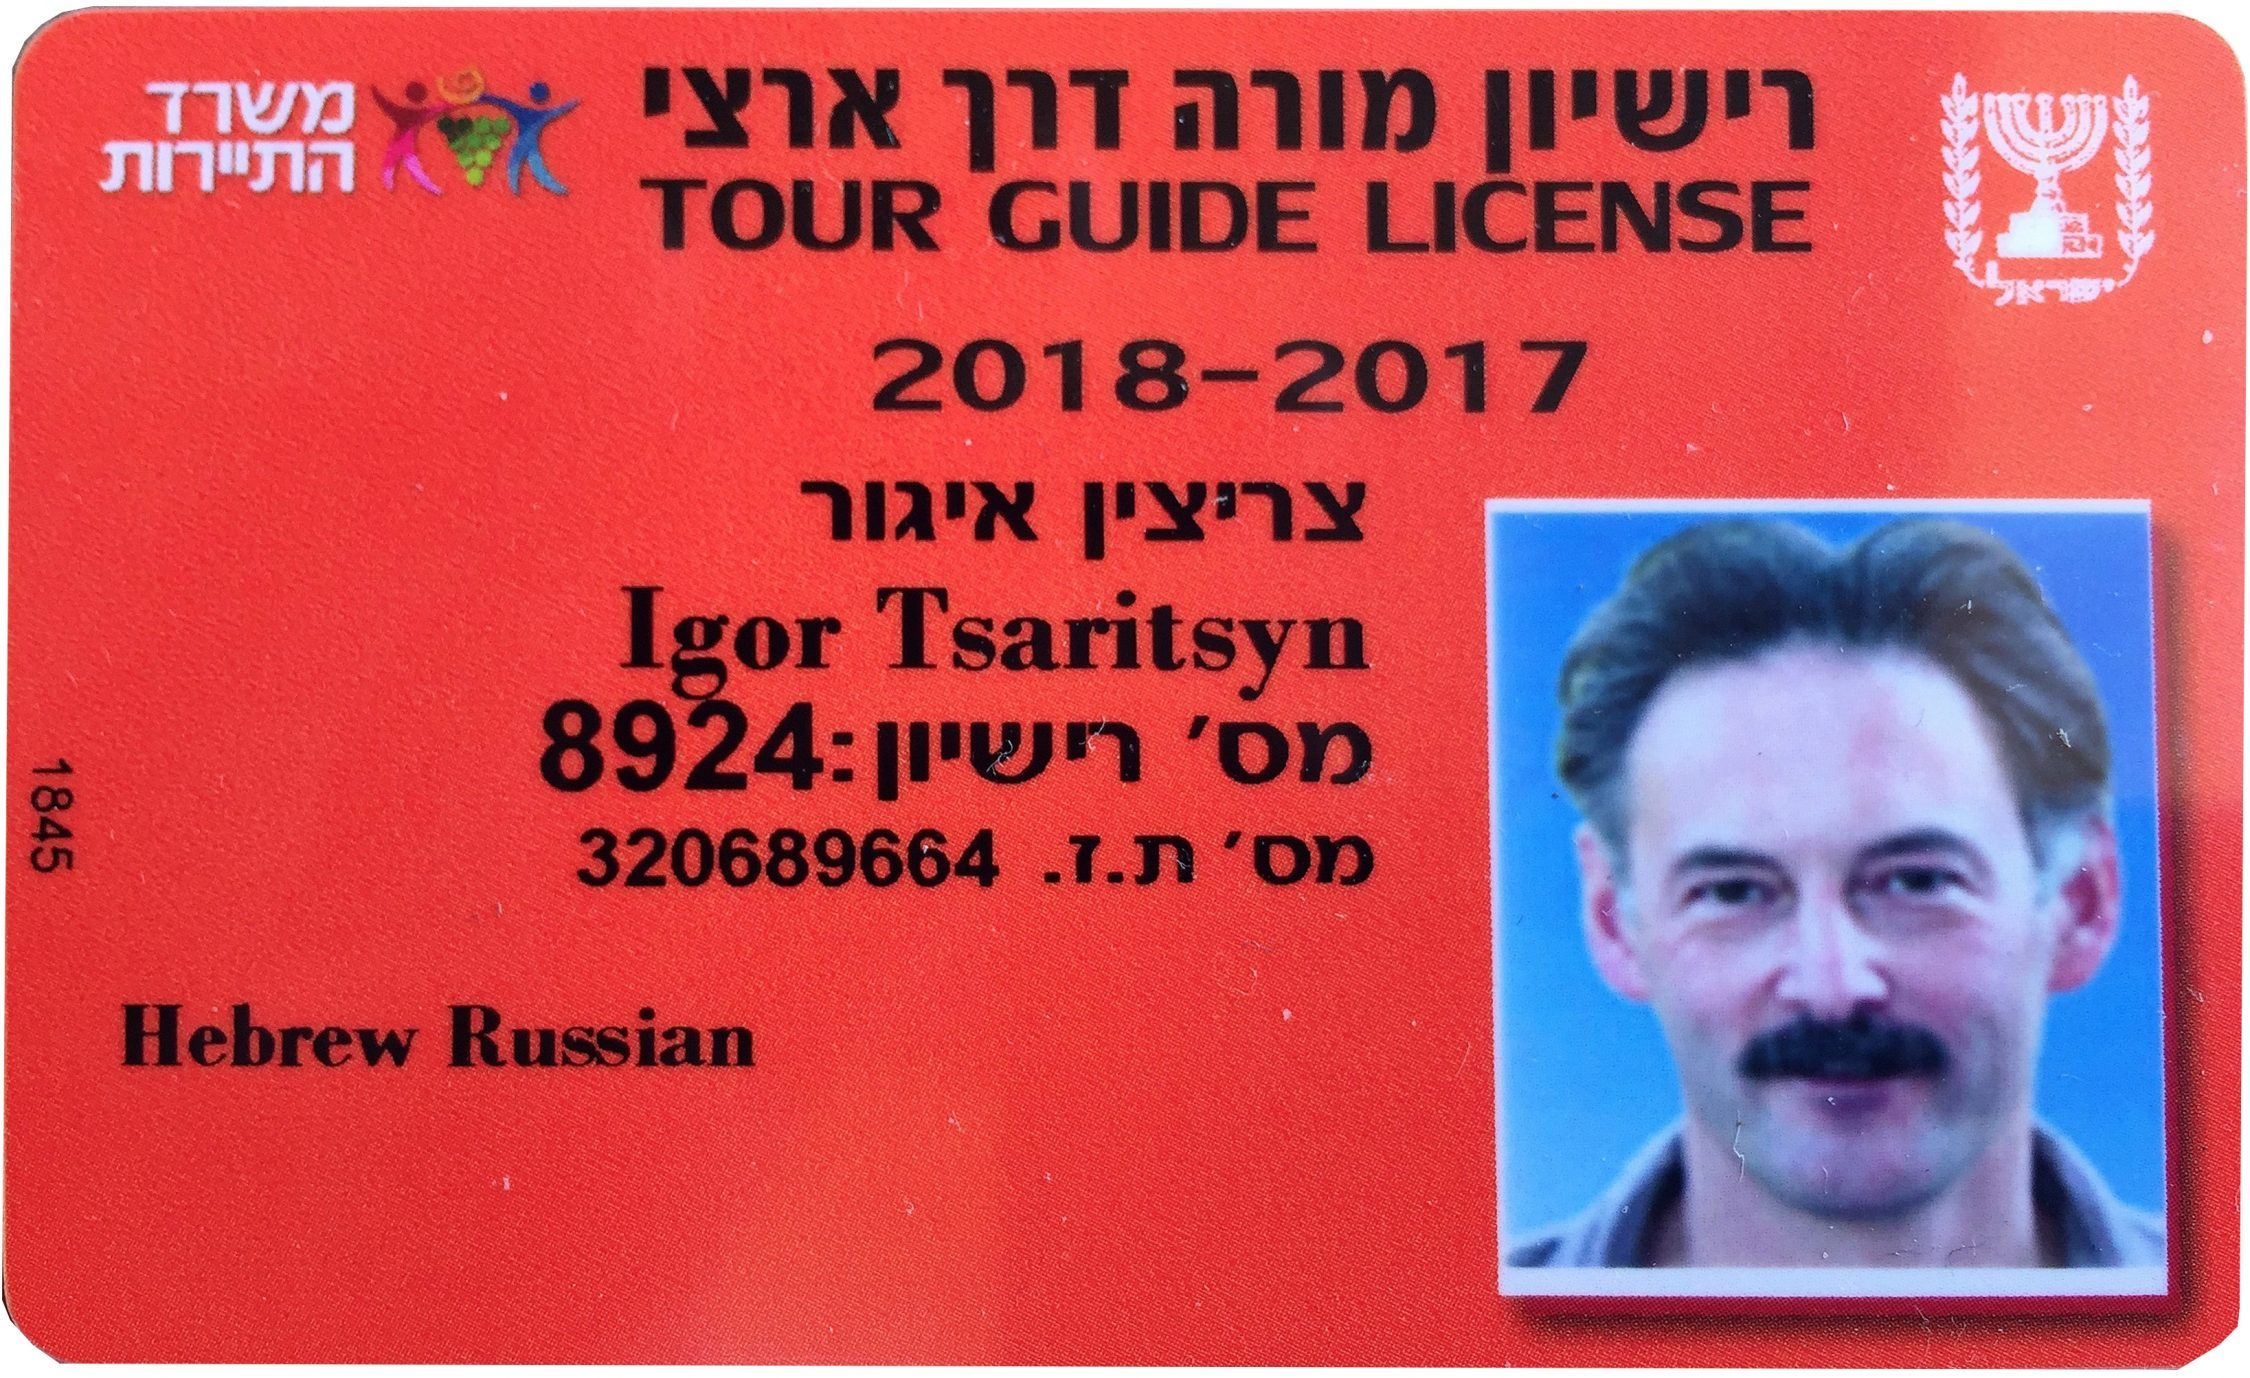 Tour Guide License 2017-2018